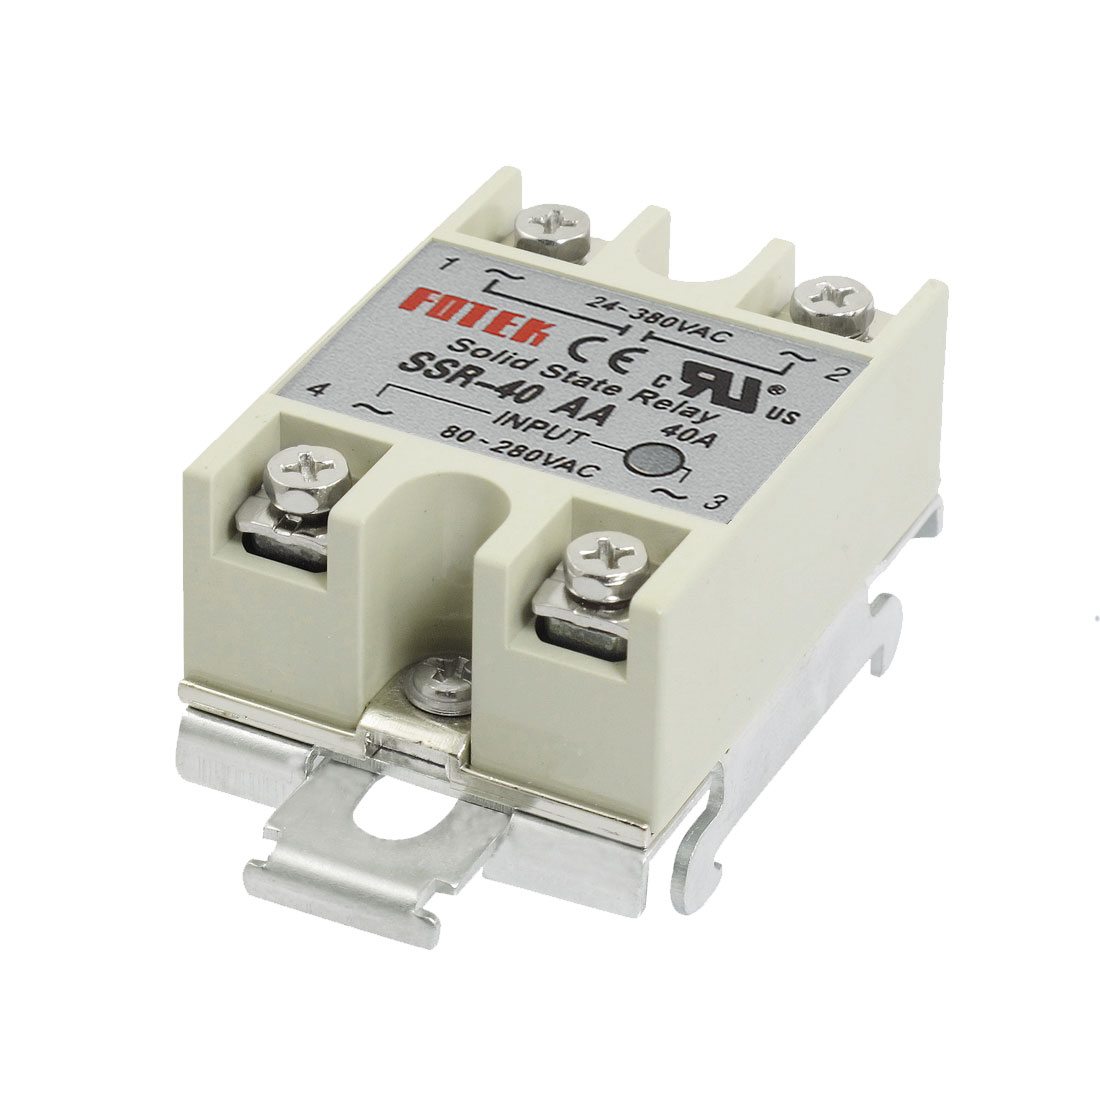 AC-AC 40A 80-280VAC 24-380VAC SSR-40AA Gray Solid State Relay DIN Rail Mount